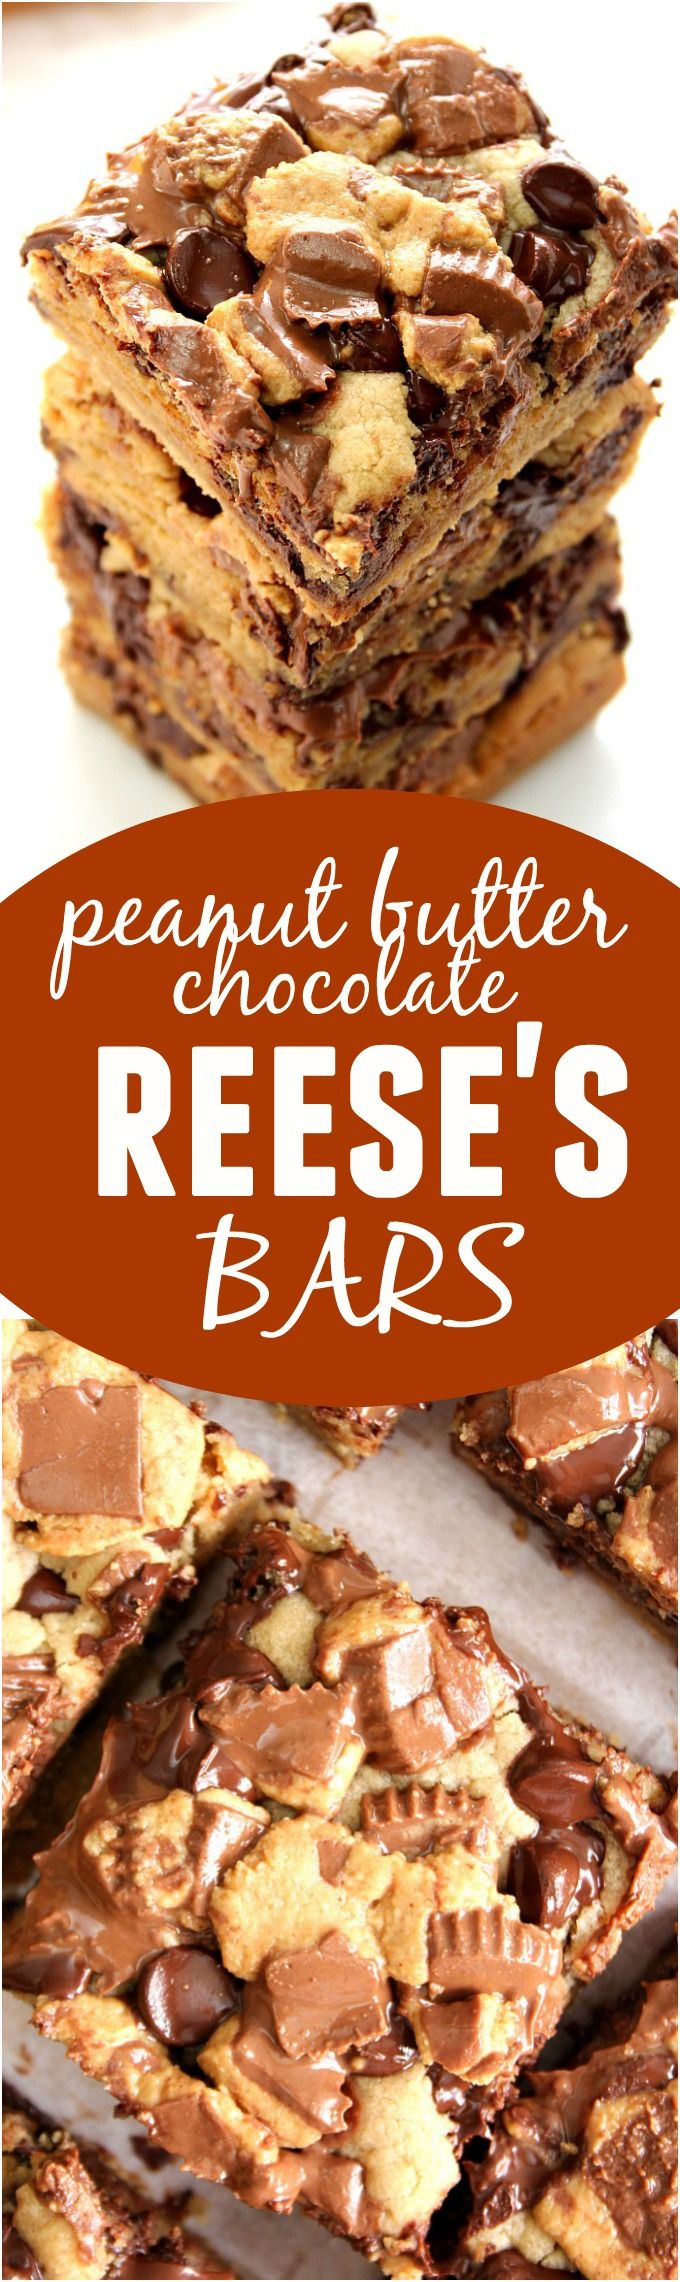 reeses bars long Peanut Butter Chocolate Reeses Bars Recipe